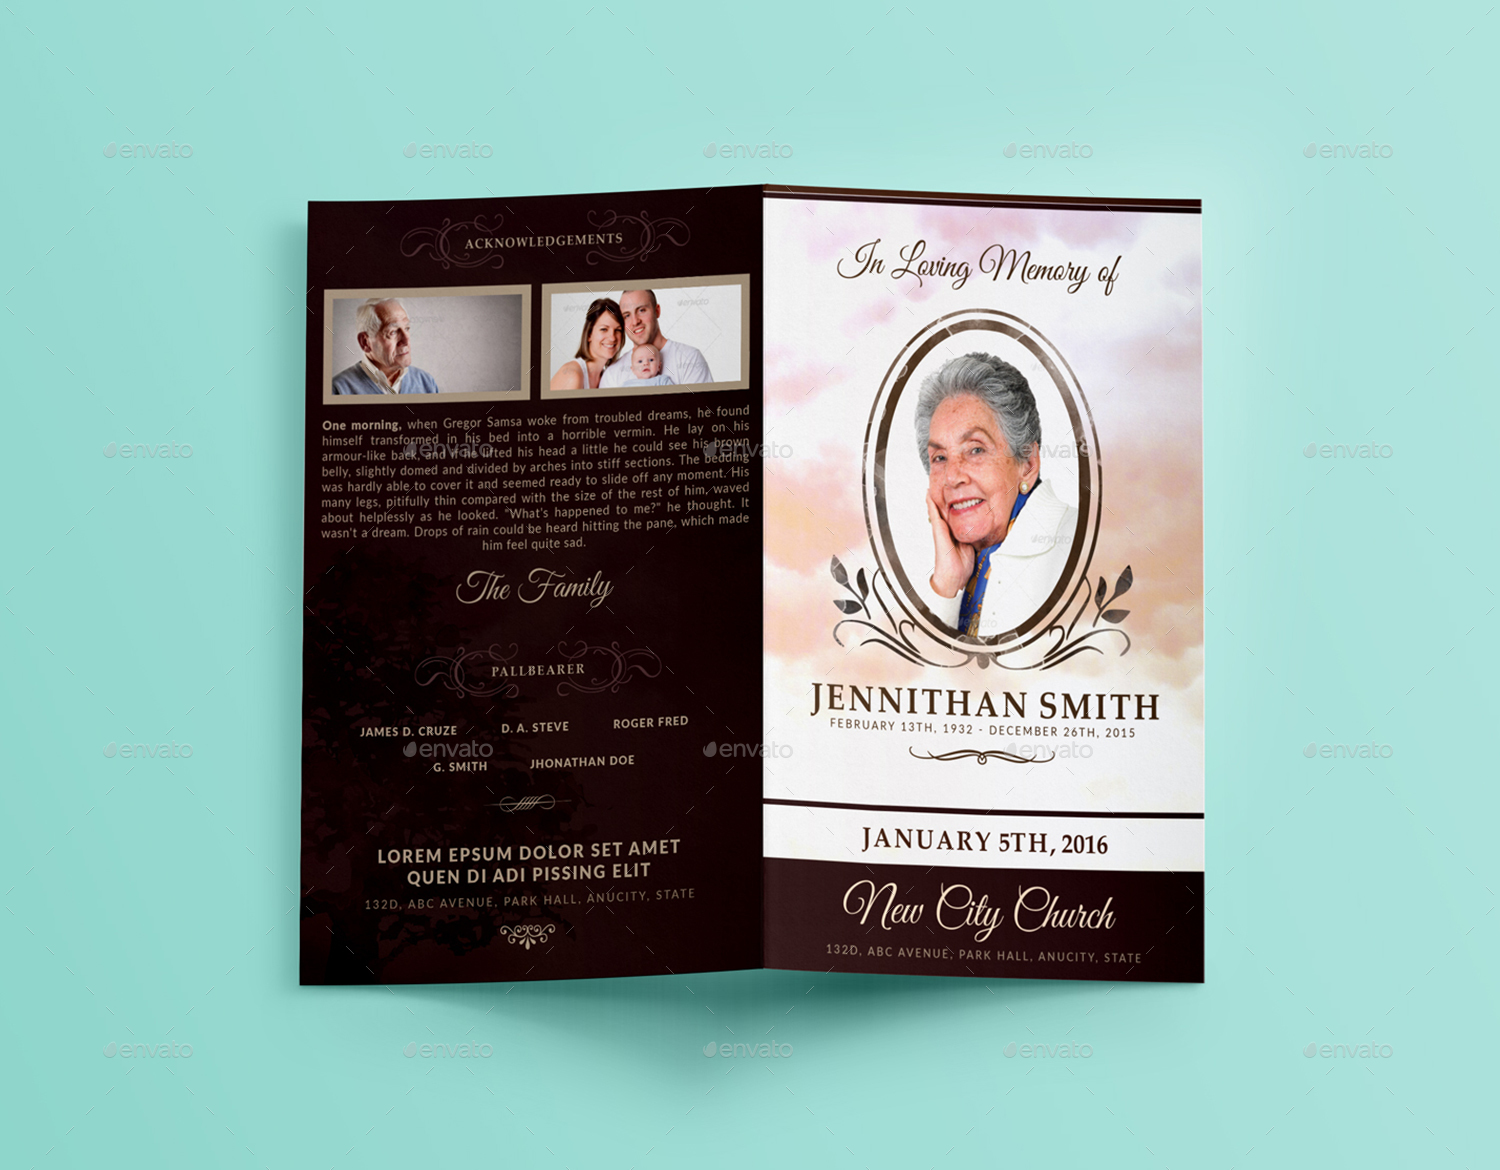 Loving memory funeral program brochure template 01 by for Funeral brochure template